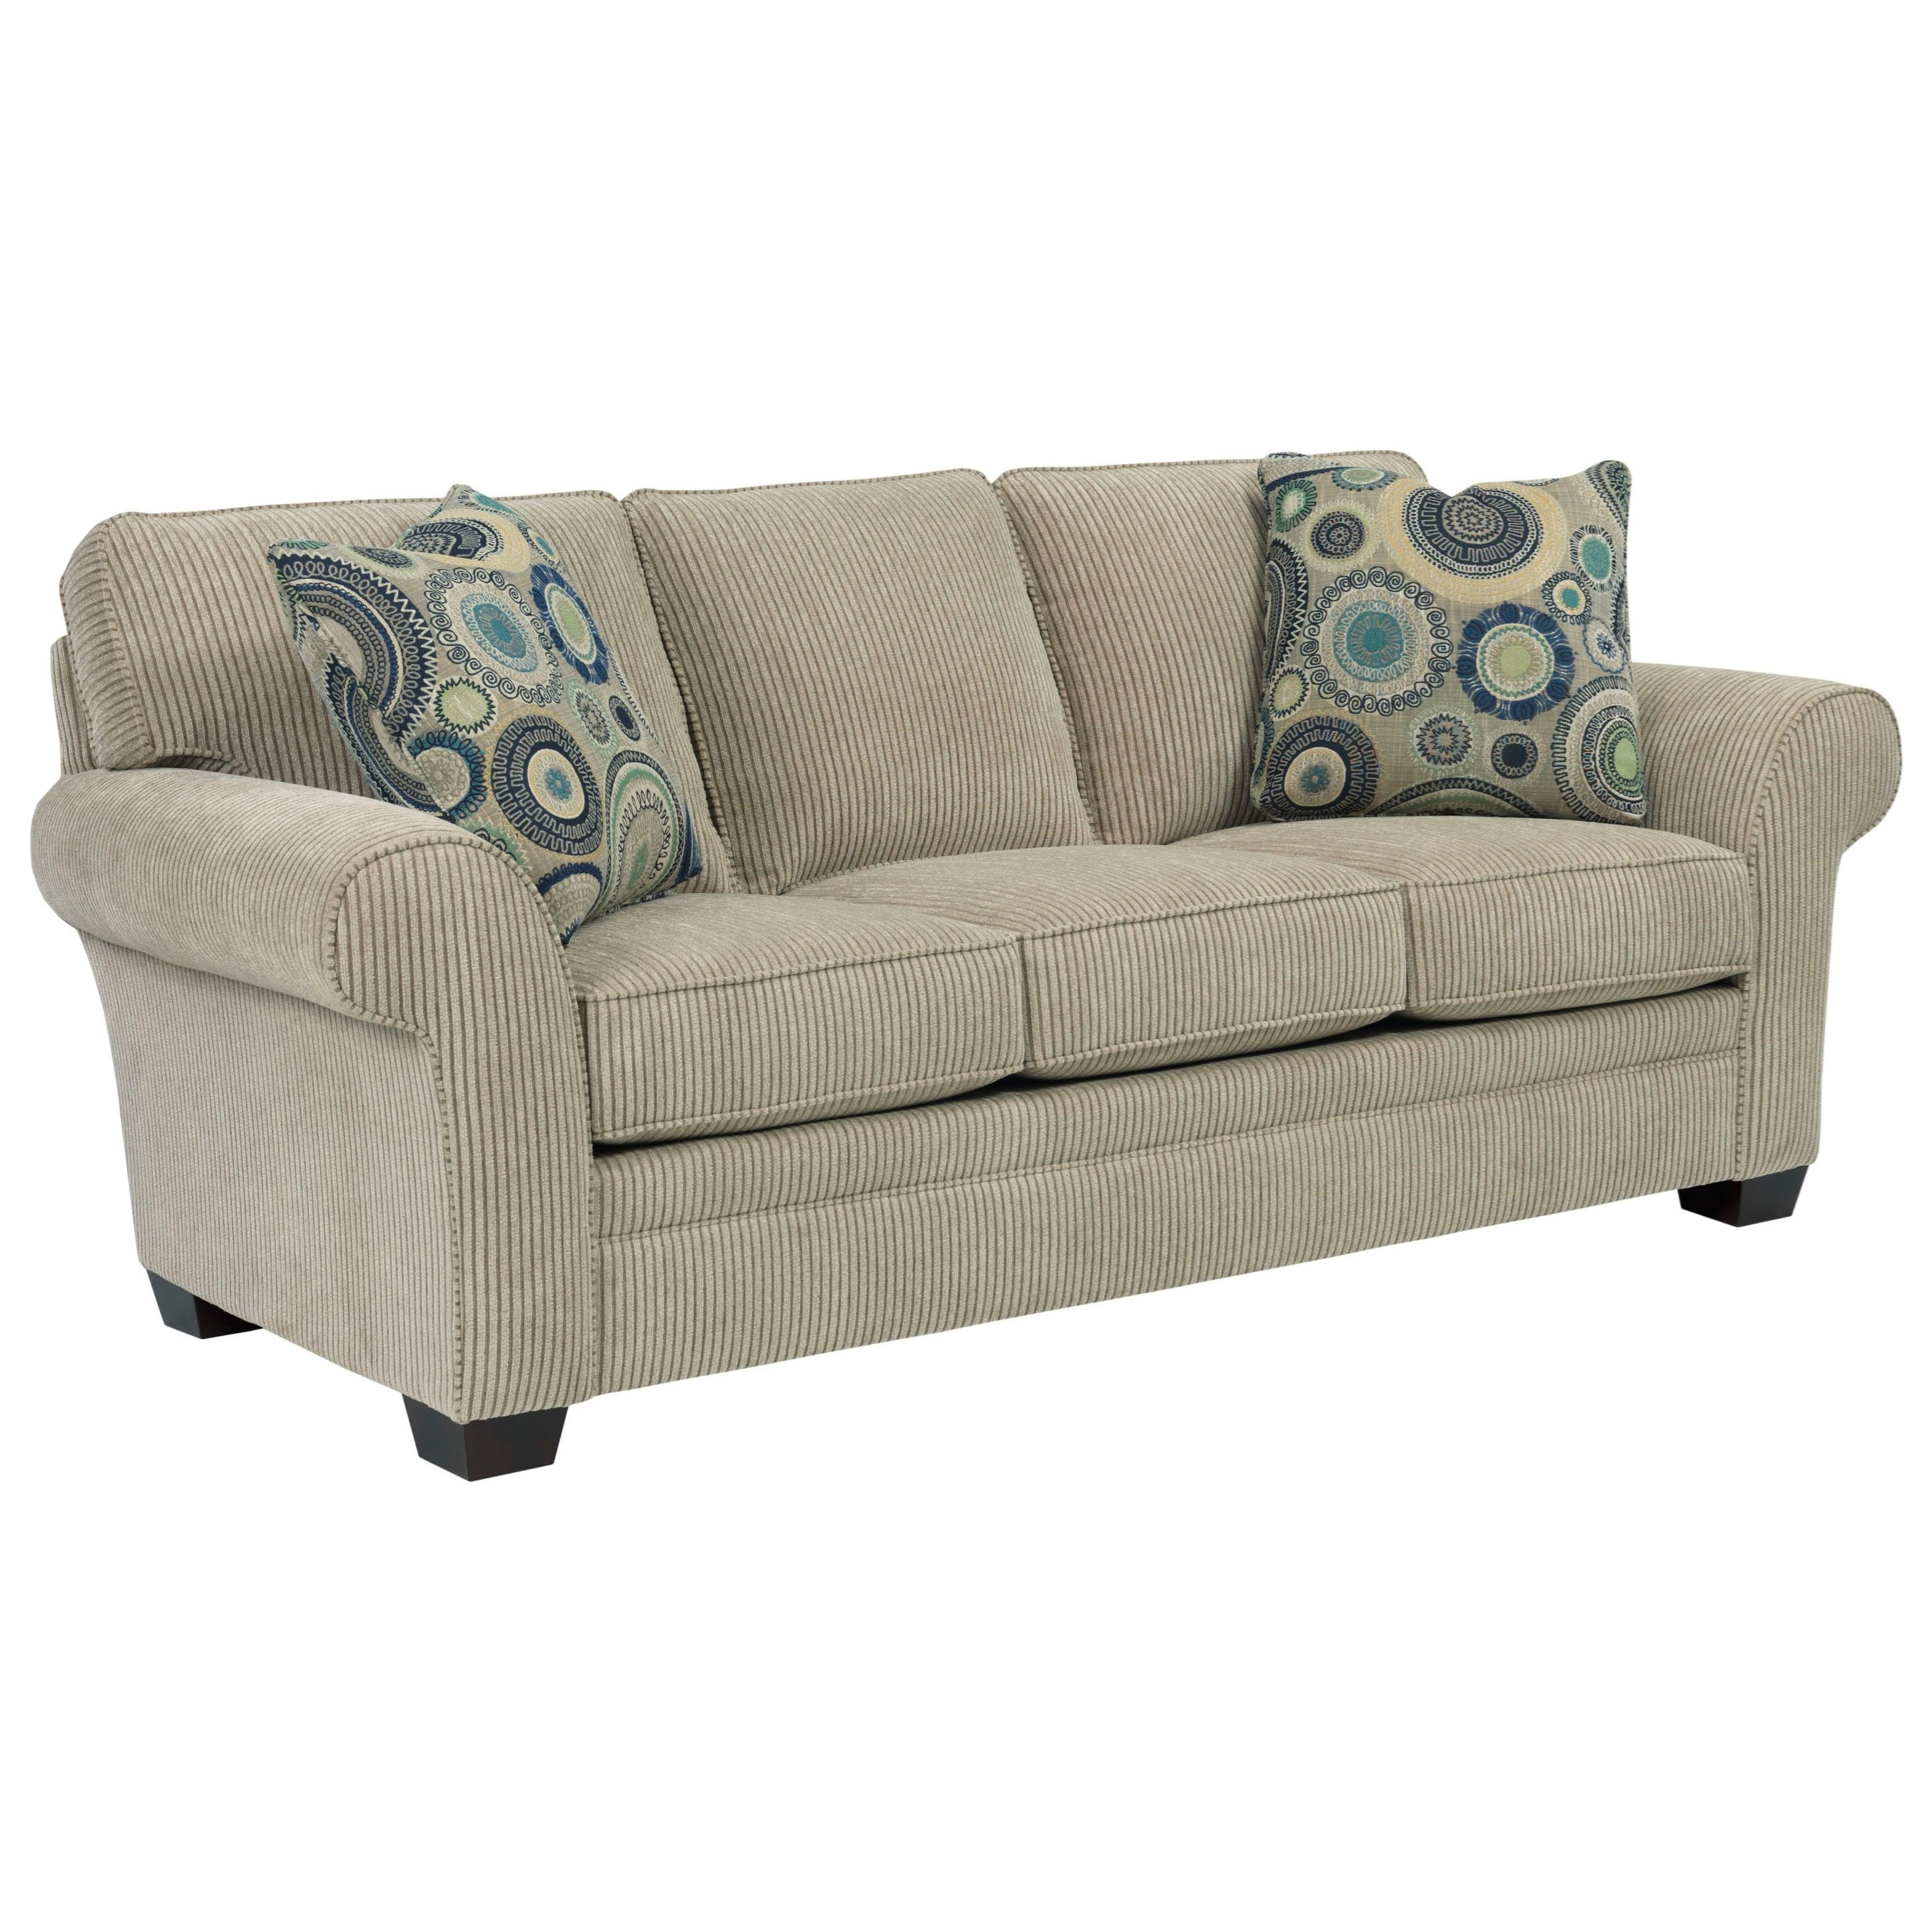 Broyhill Furniture Zachary Queen IREST Sleeper - Item Number: 7902-7M-8785-93